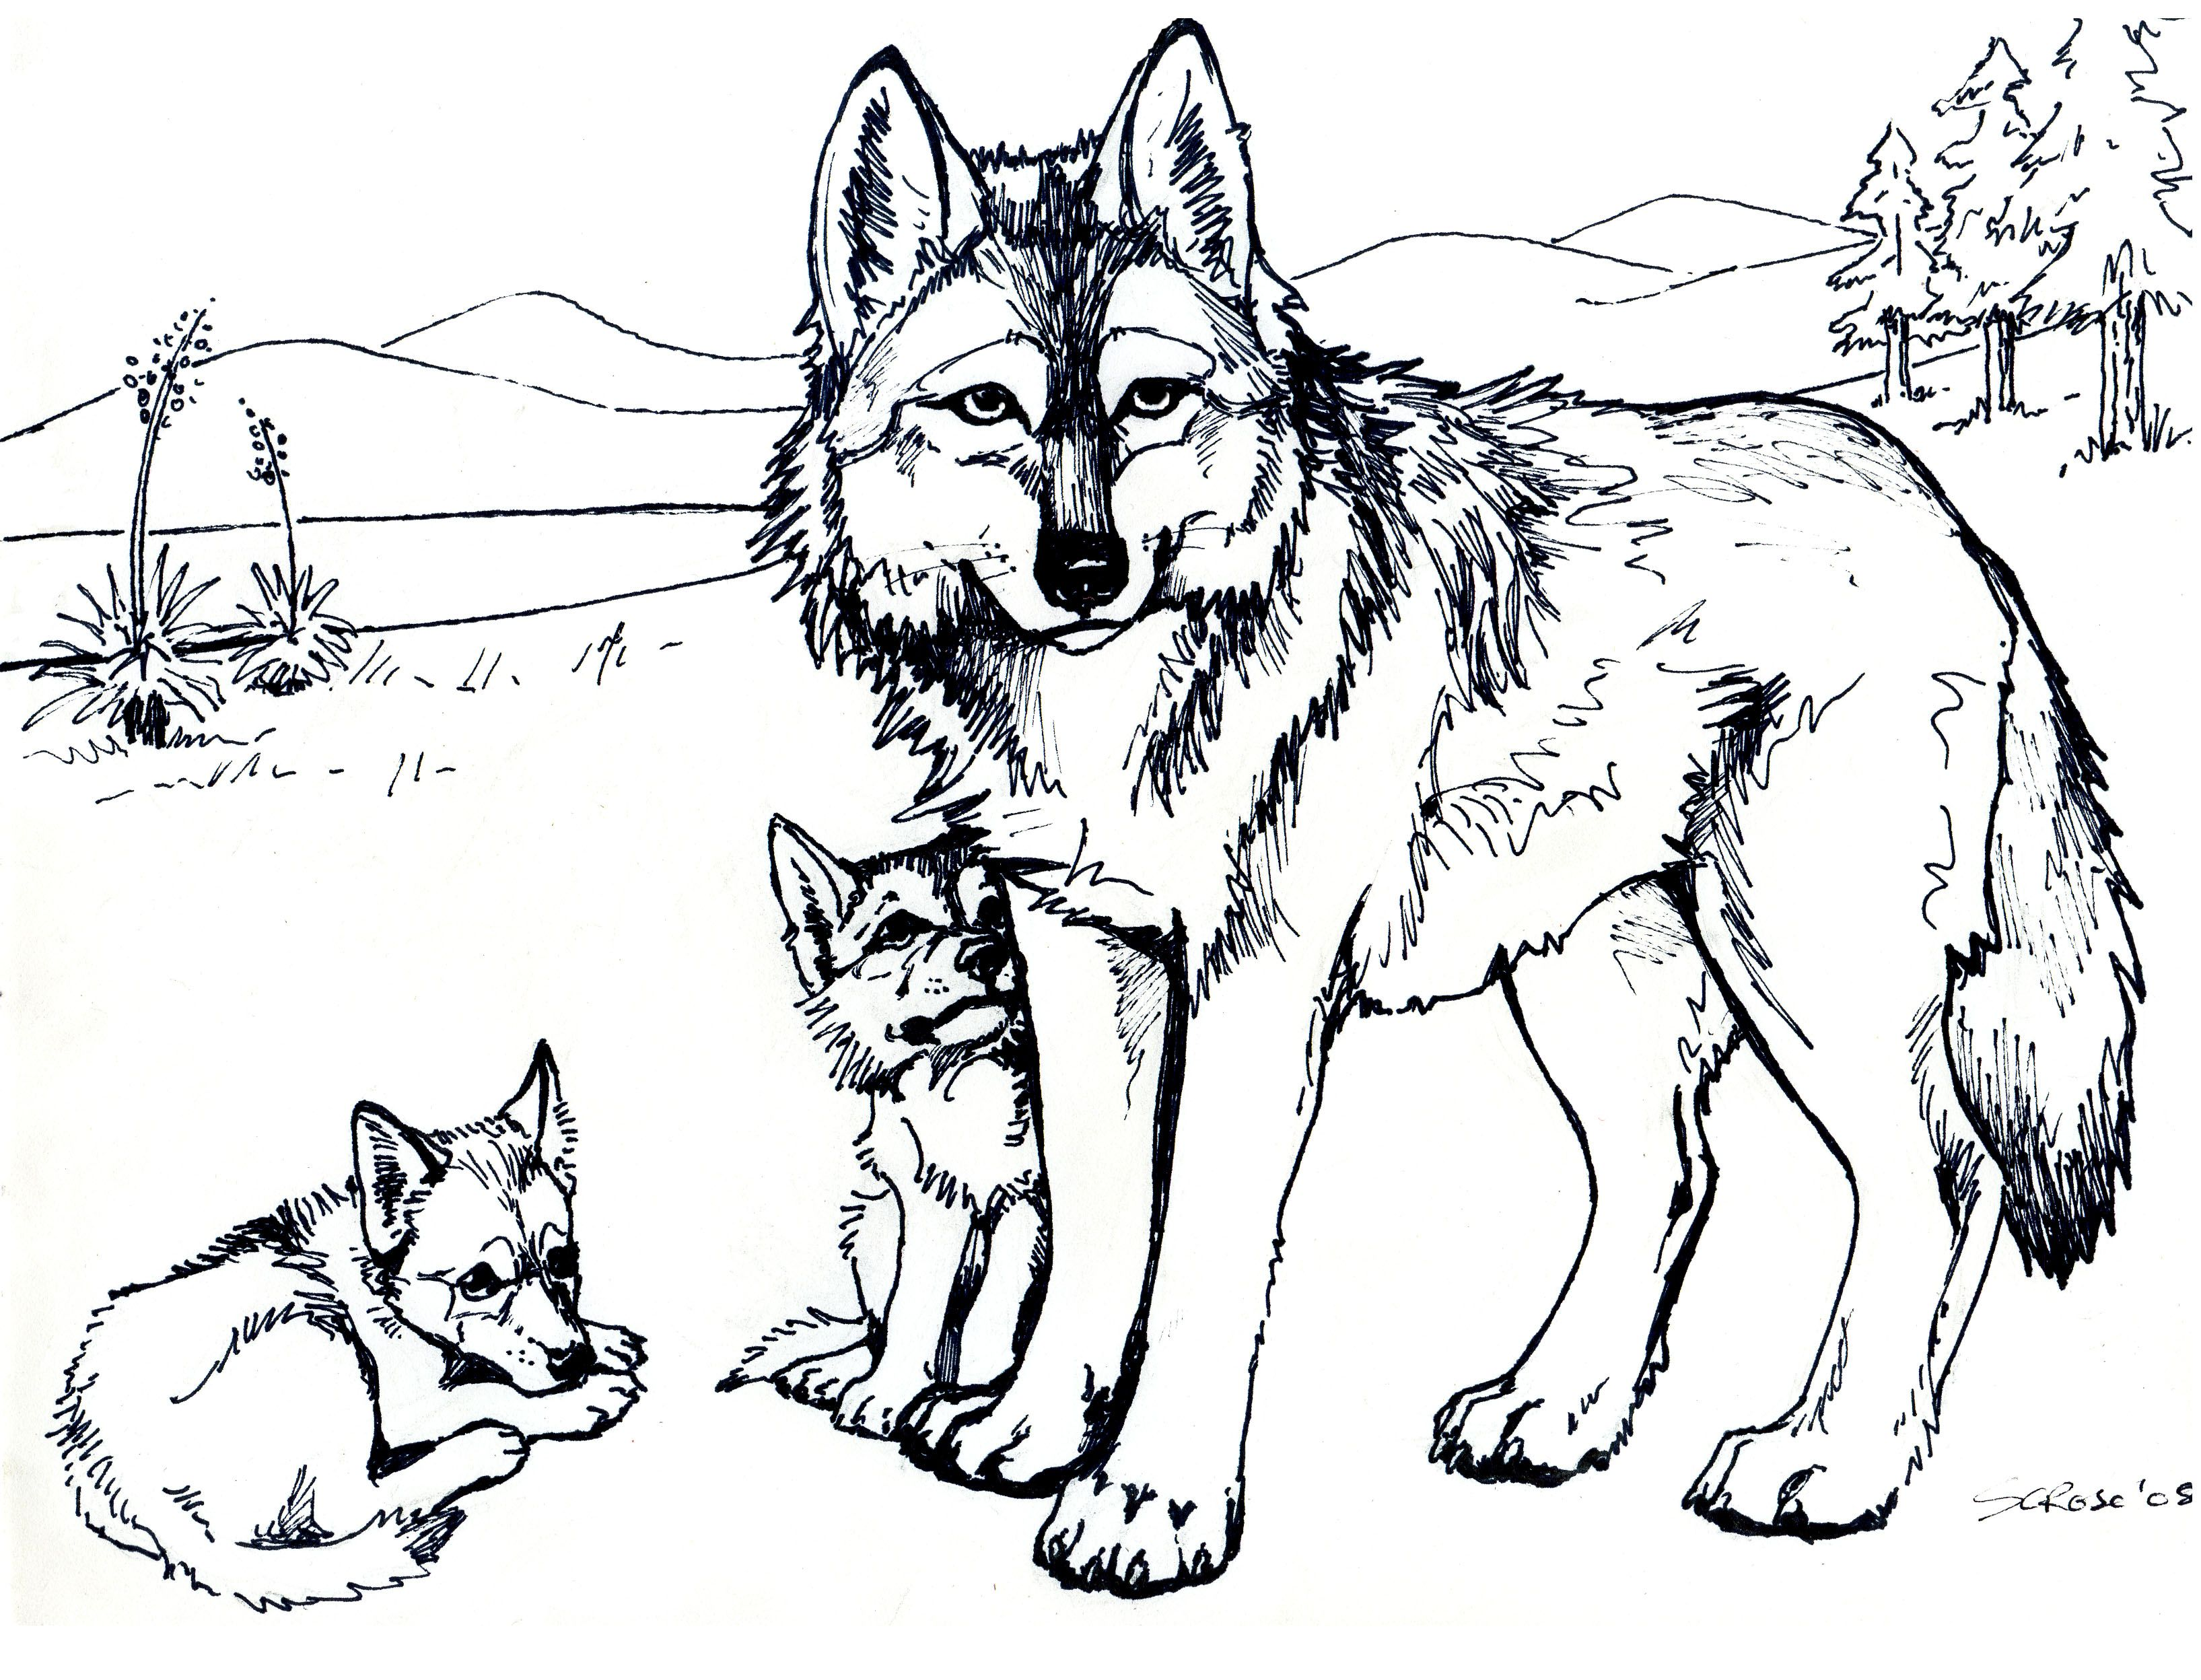 printable free wolf coloring pages for adults - Wolf Coloring Pages